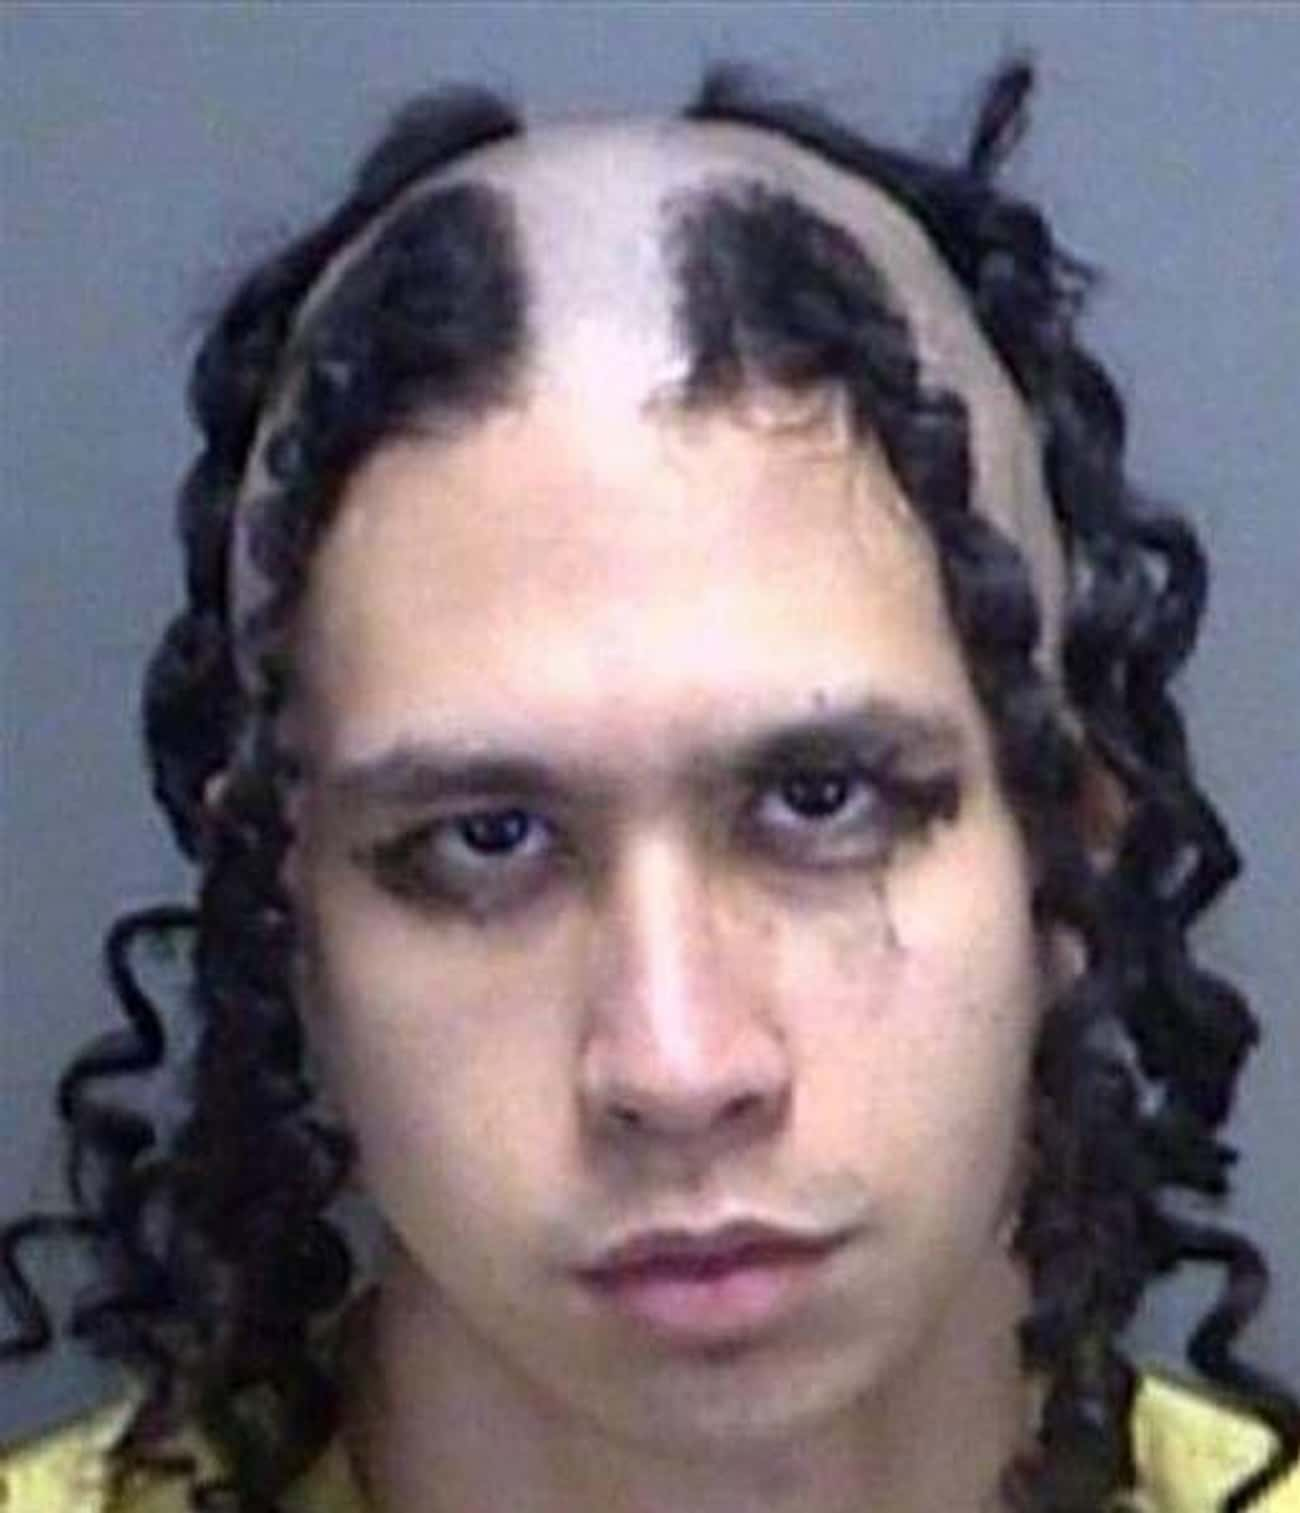 Curly Fried is listed (or ranked) 3 on the list 27 Of The Most Embarrassing Mugshot Hairdos Ever